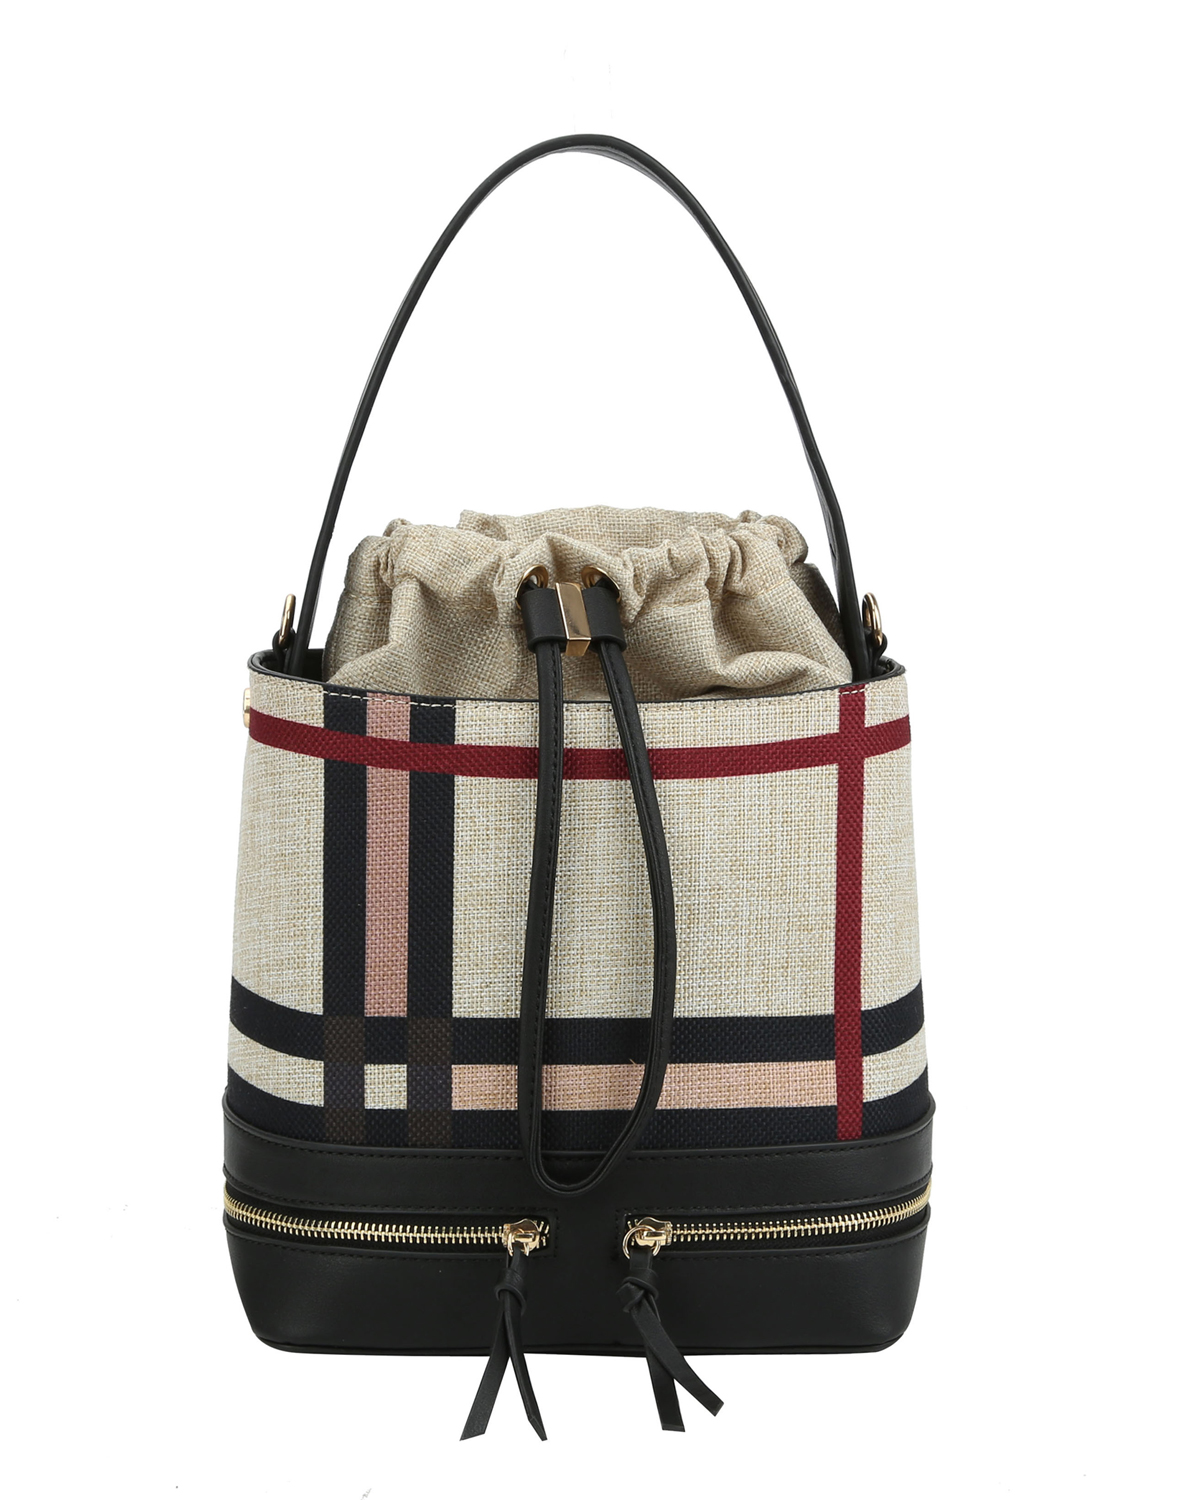 D0521(MUL1TP)-wholesale-handbag-plaid-checkered-pattern-woven-linen-vegan-leatherette-strap-zipper-drawstring-gold(0).jpg